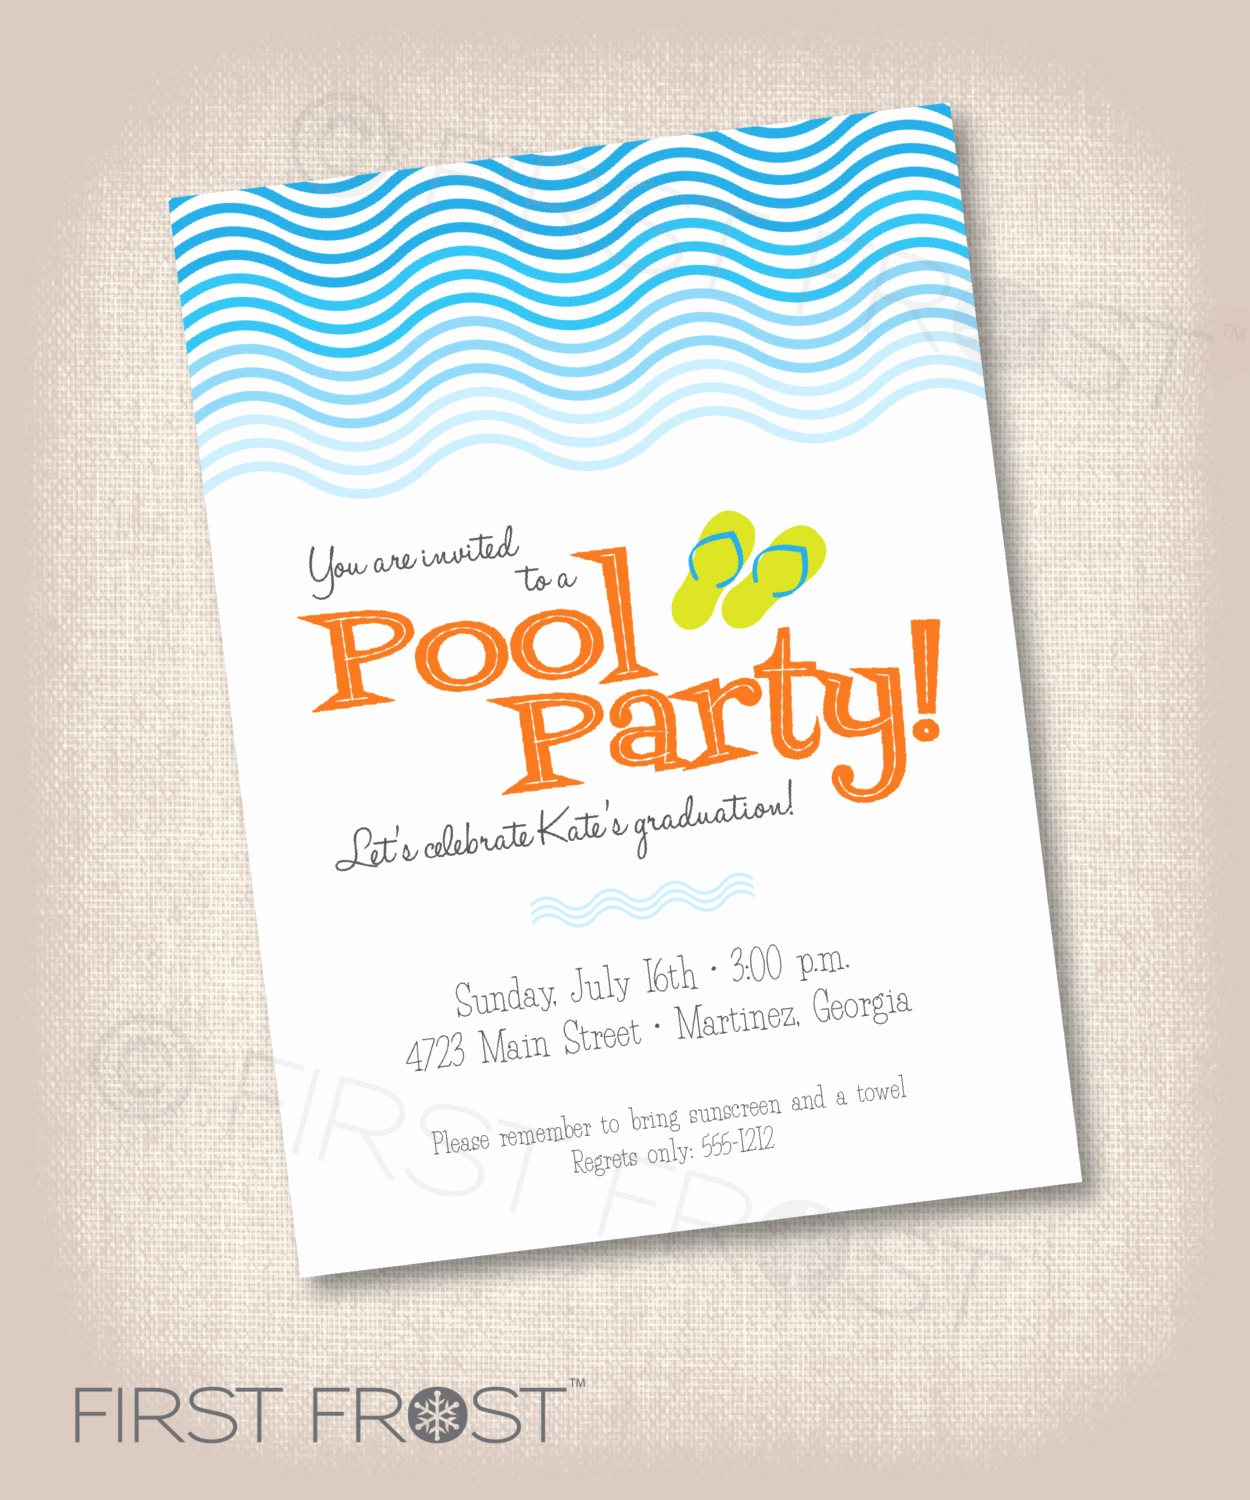 Graduation Party Invitation Messages Best Of Pool Party Printable Invitation Birthday Graduation Party